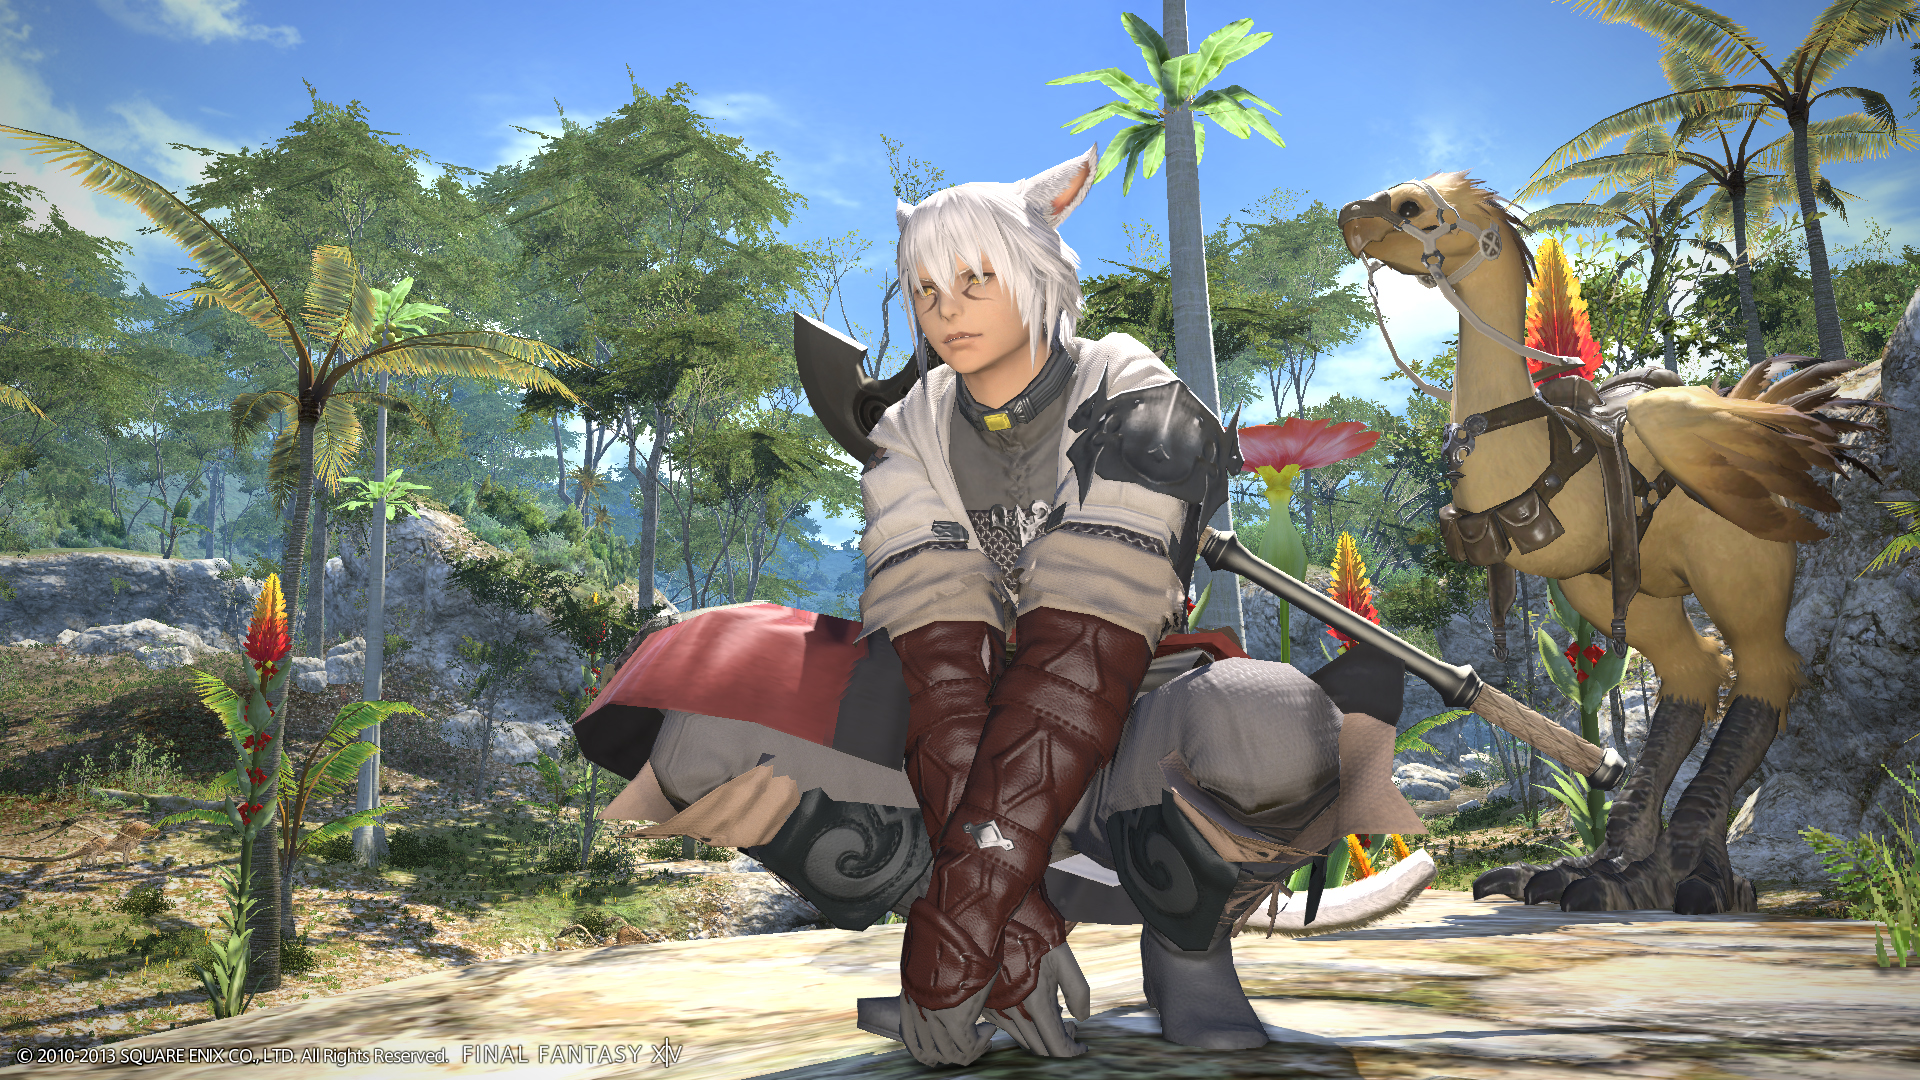 Final Fantasy XIV Open Beta and Early Access Announced | USgamer